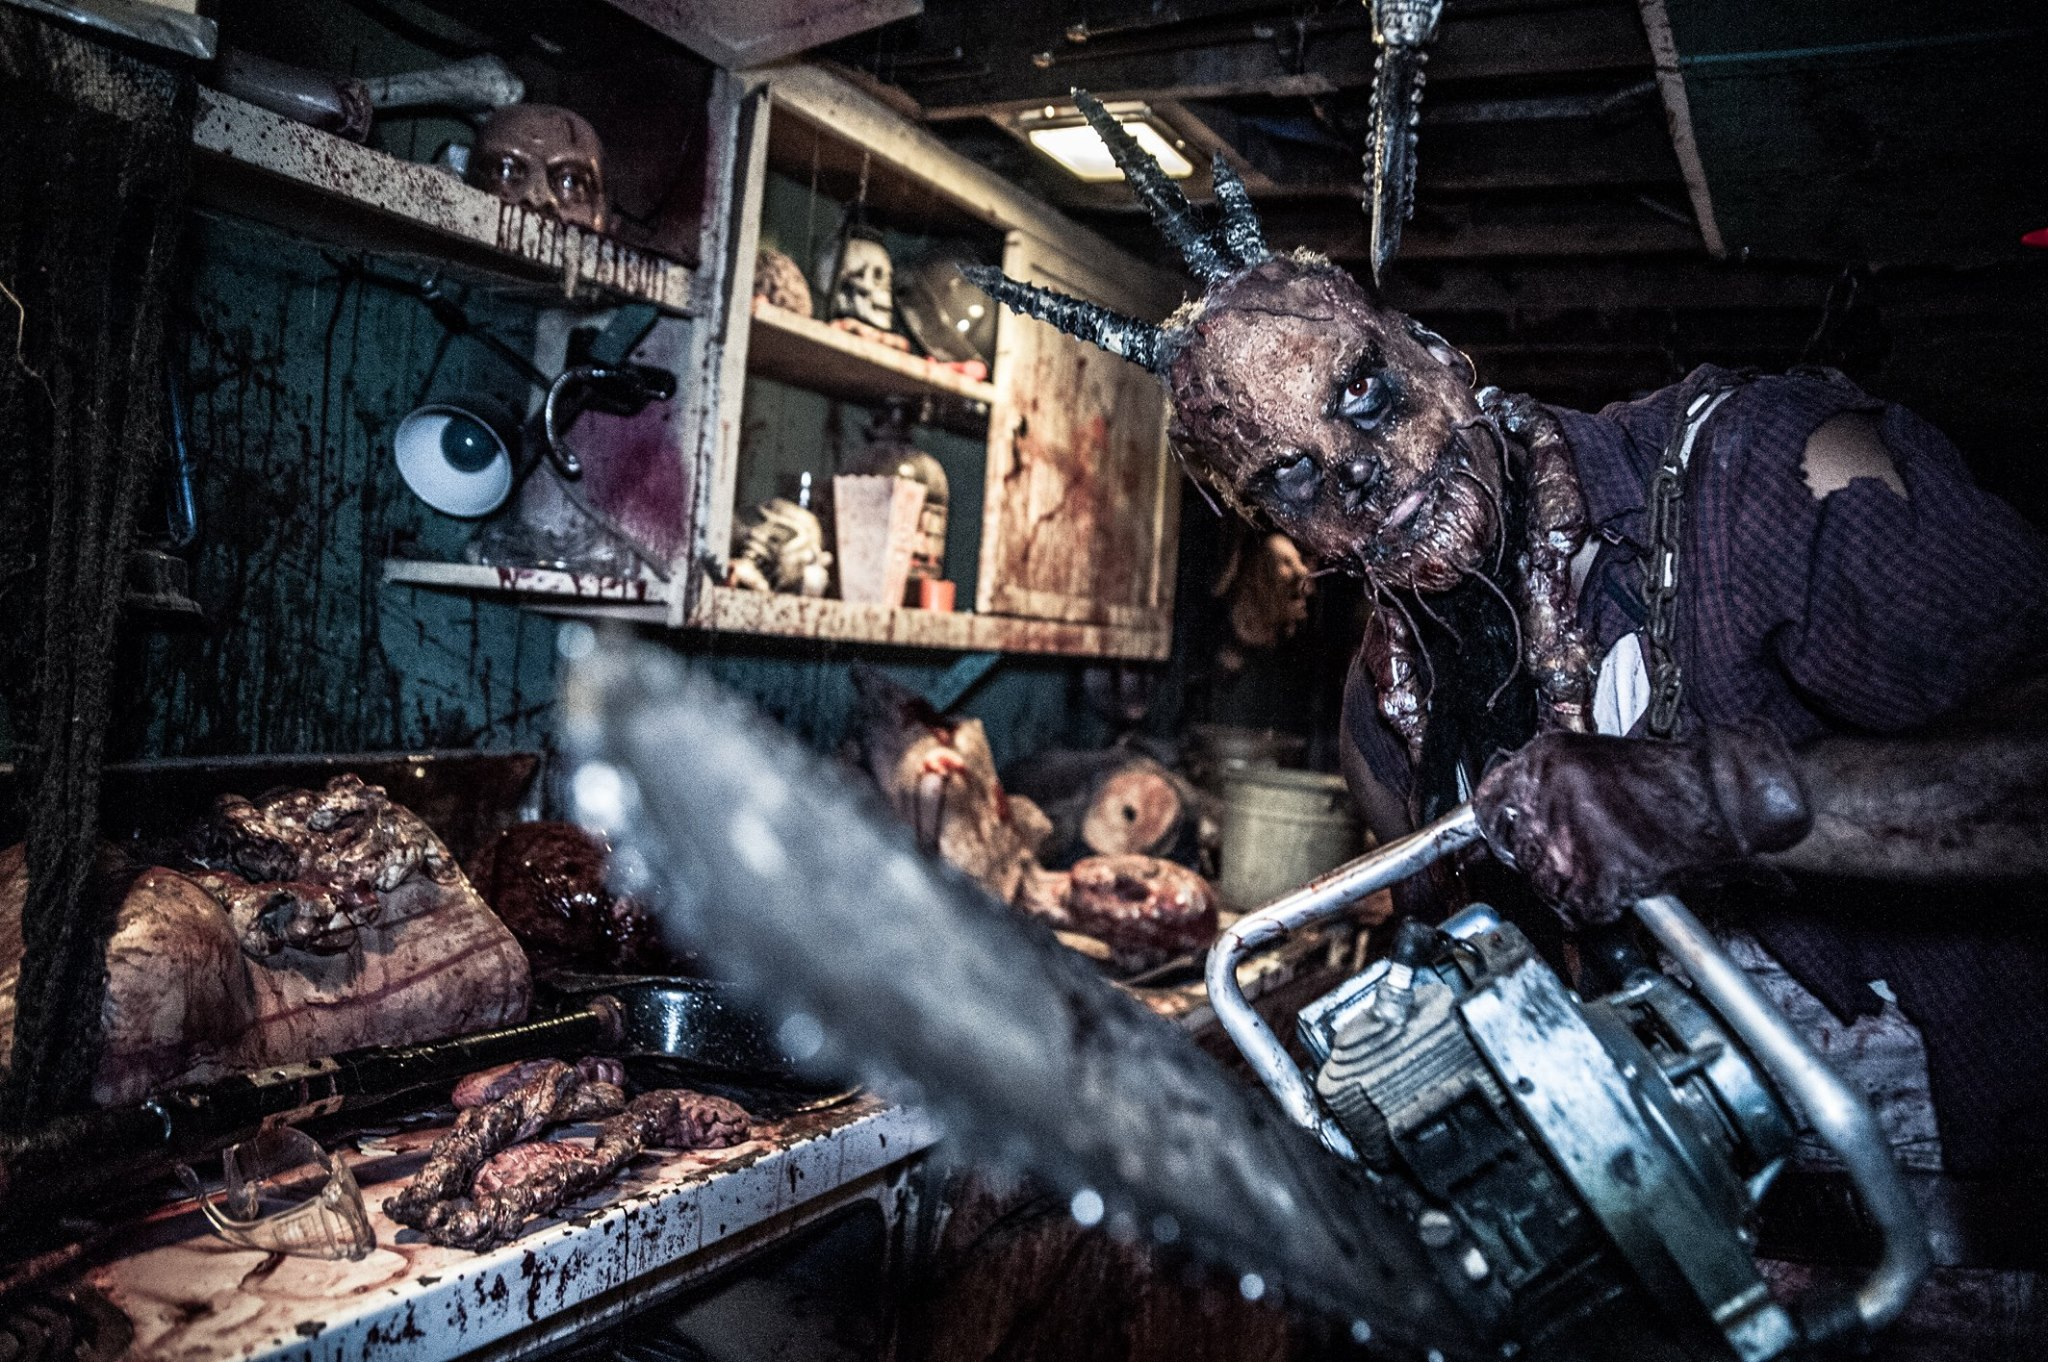 21752940 10155499931530180 242248136819047024 o - Halls of Horror - Haunted Attraction 2017 Preview